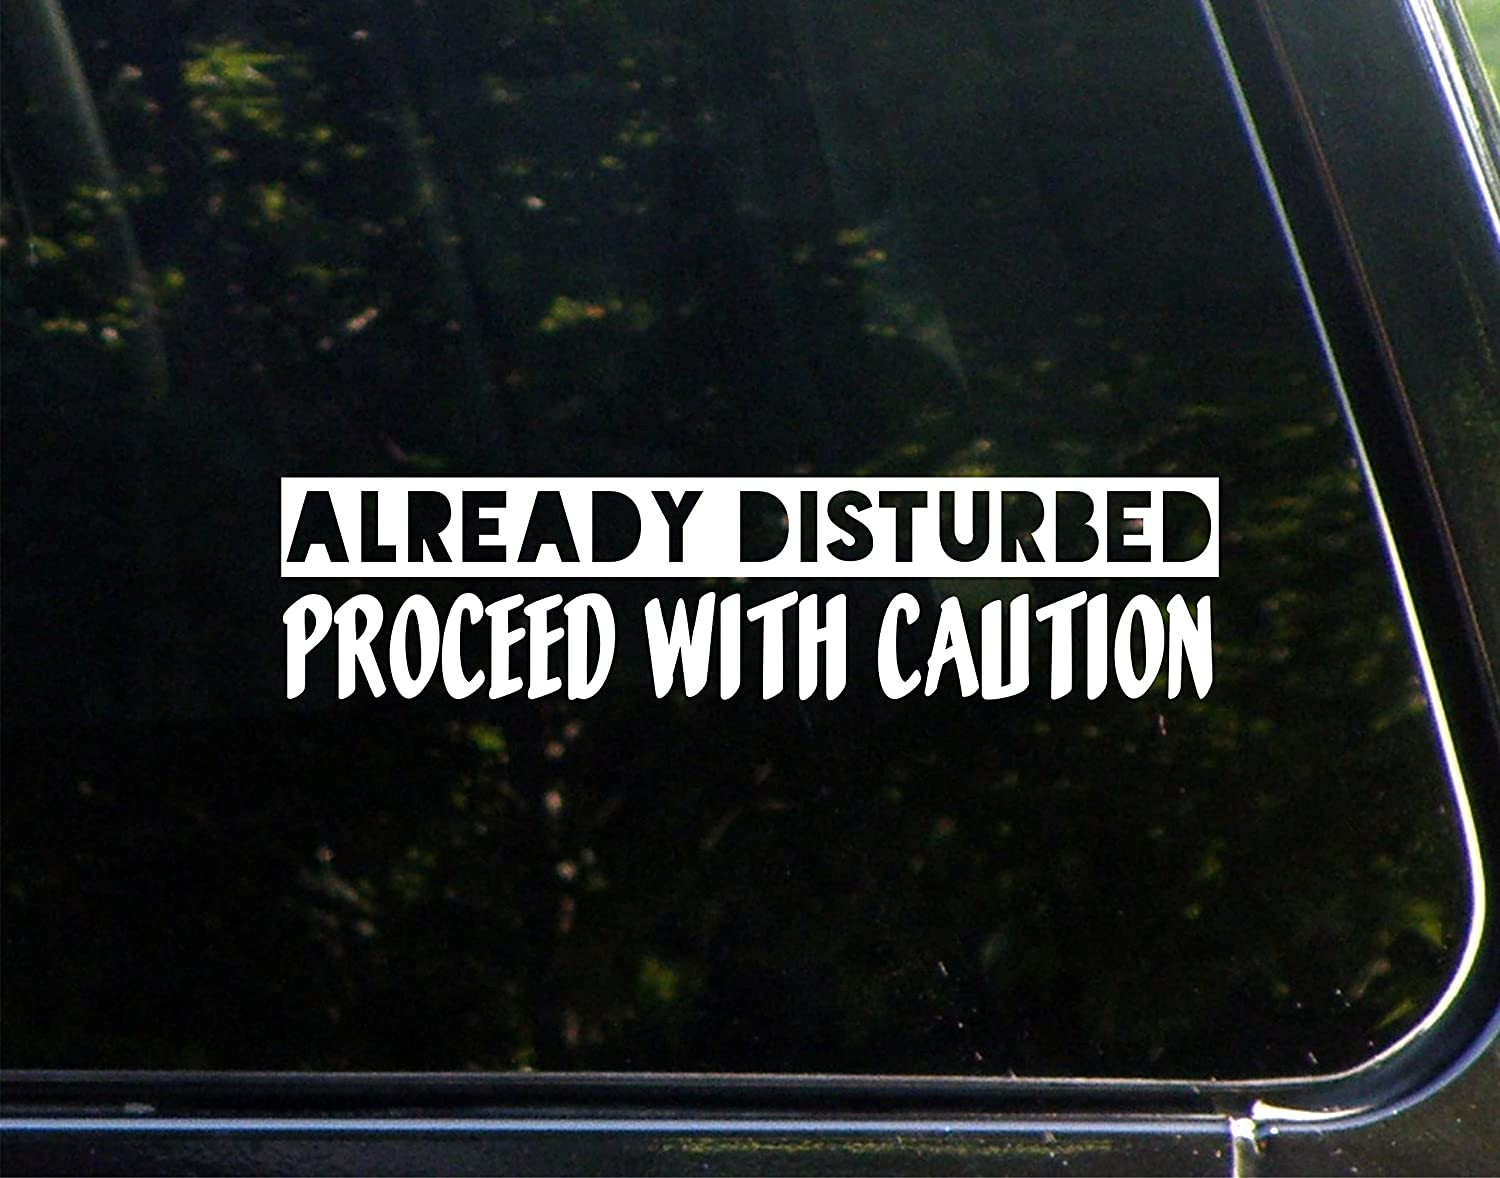 Disturbed Band Vinyl Decal Sticker BUY 2 GET 1 FREE Choose Size /& Color